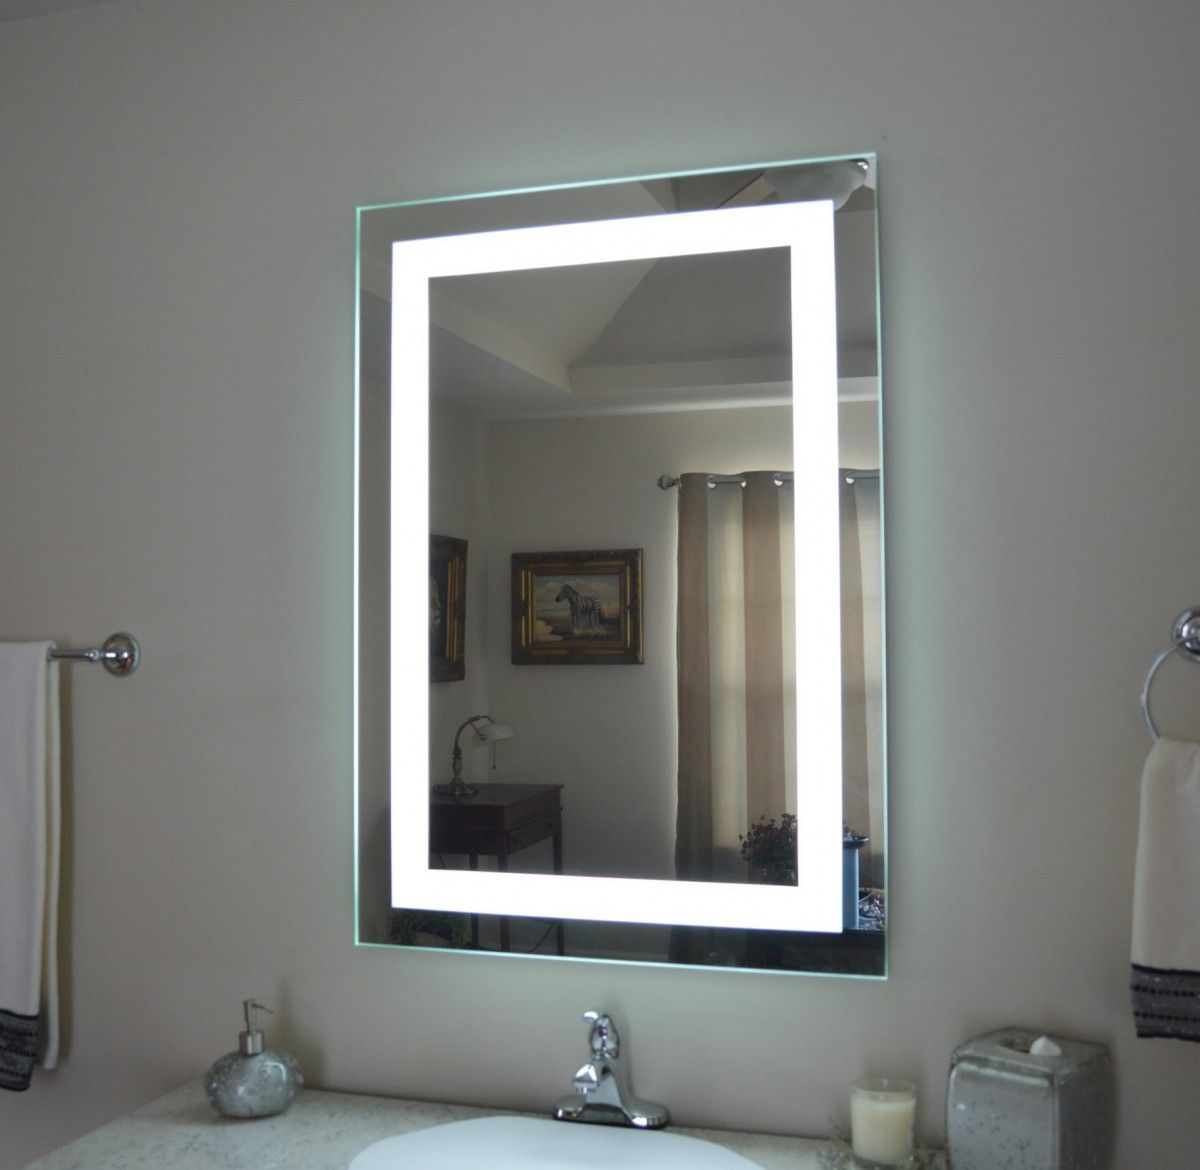 Bathroom Mirror Led Google Search Asia Sf From Ayman Pinterest Bathroom Mirrors